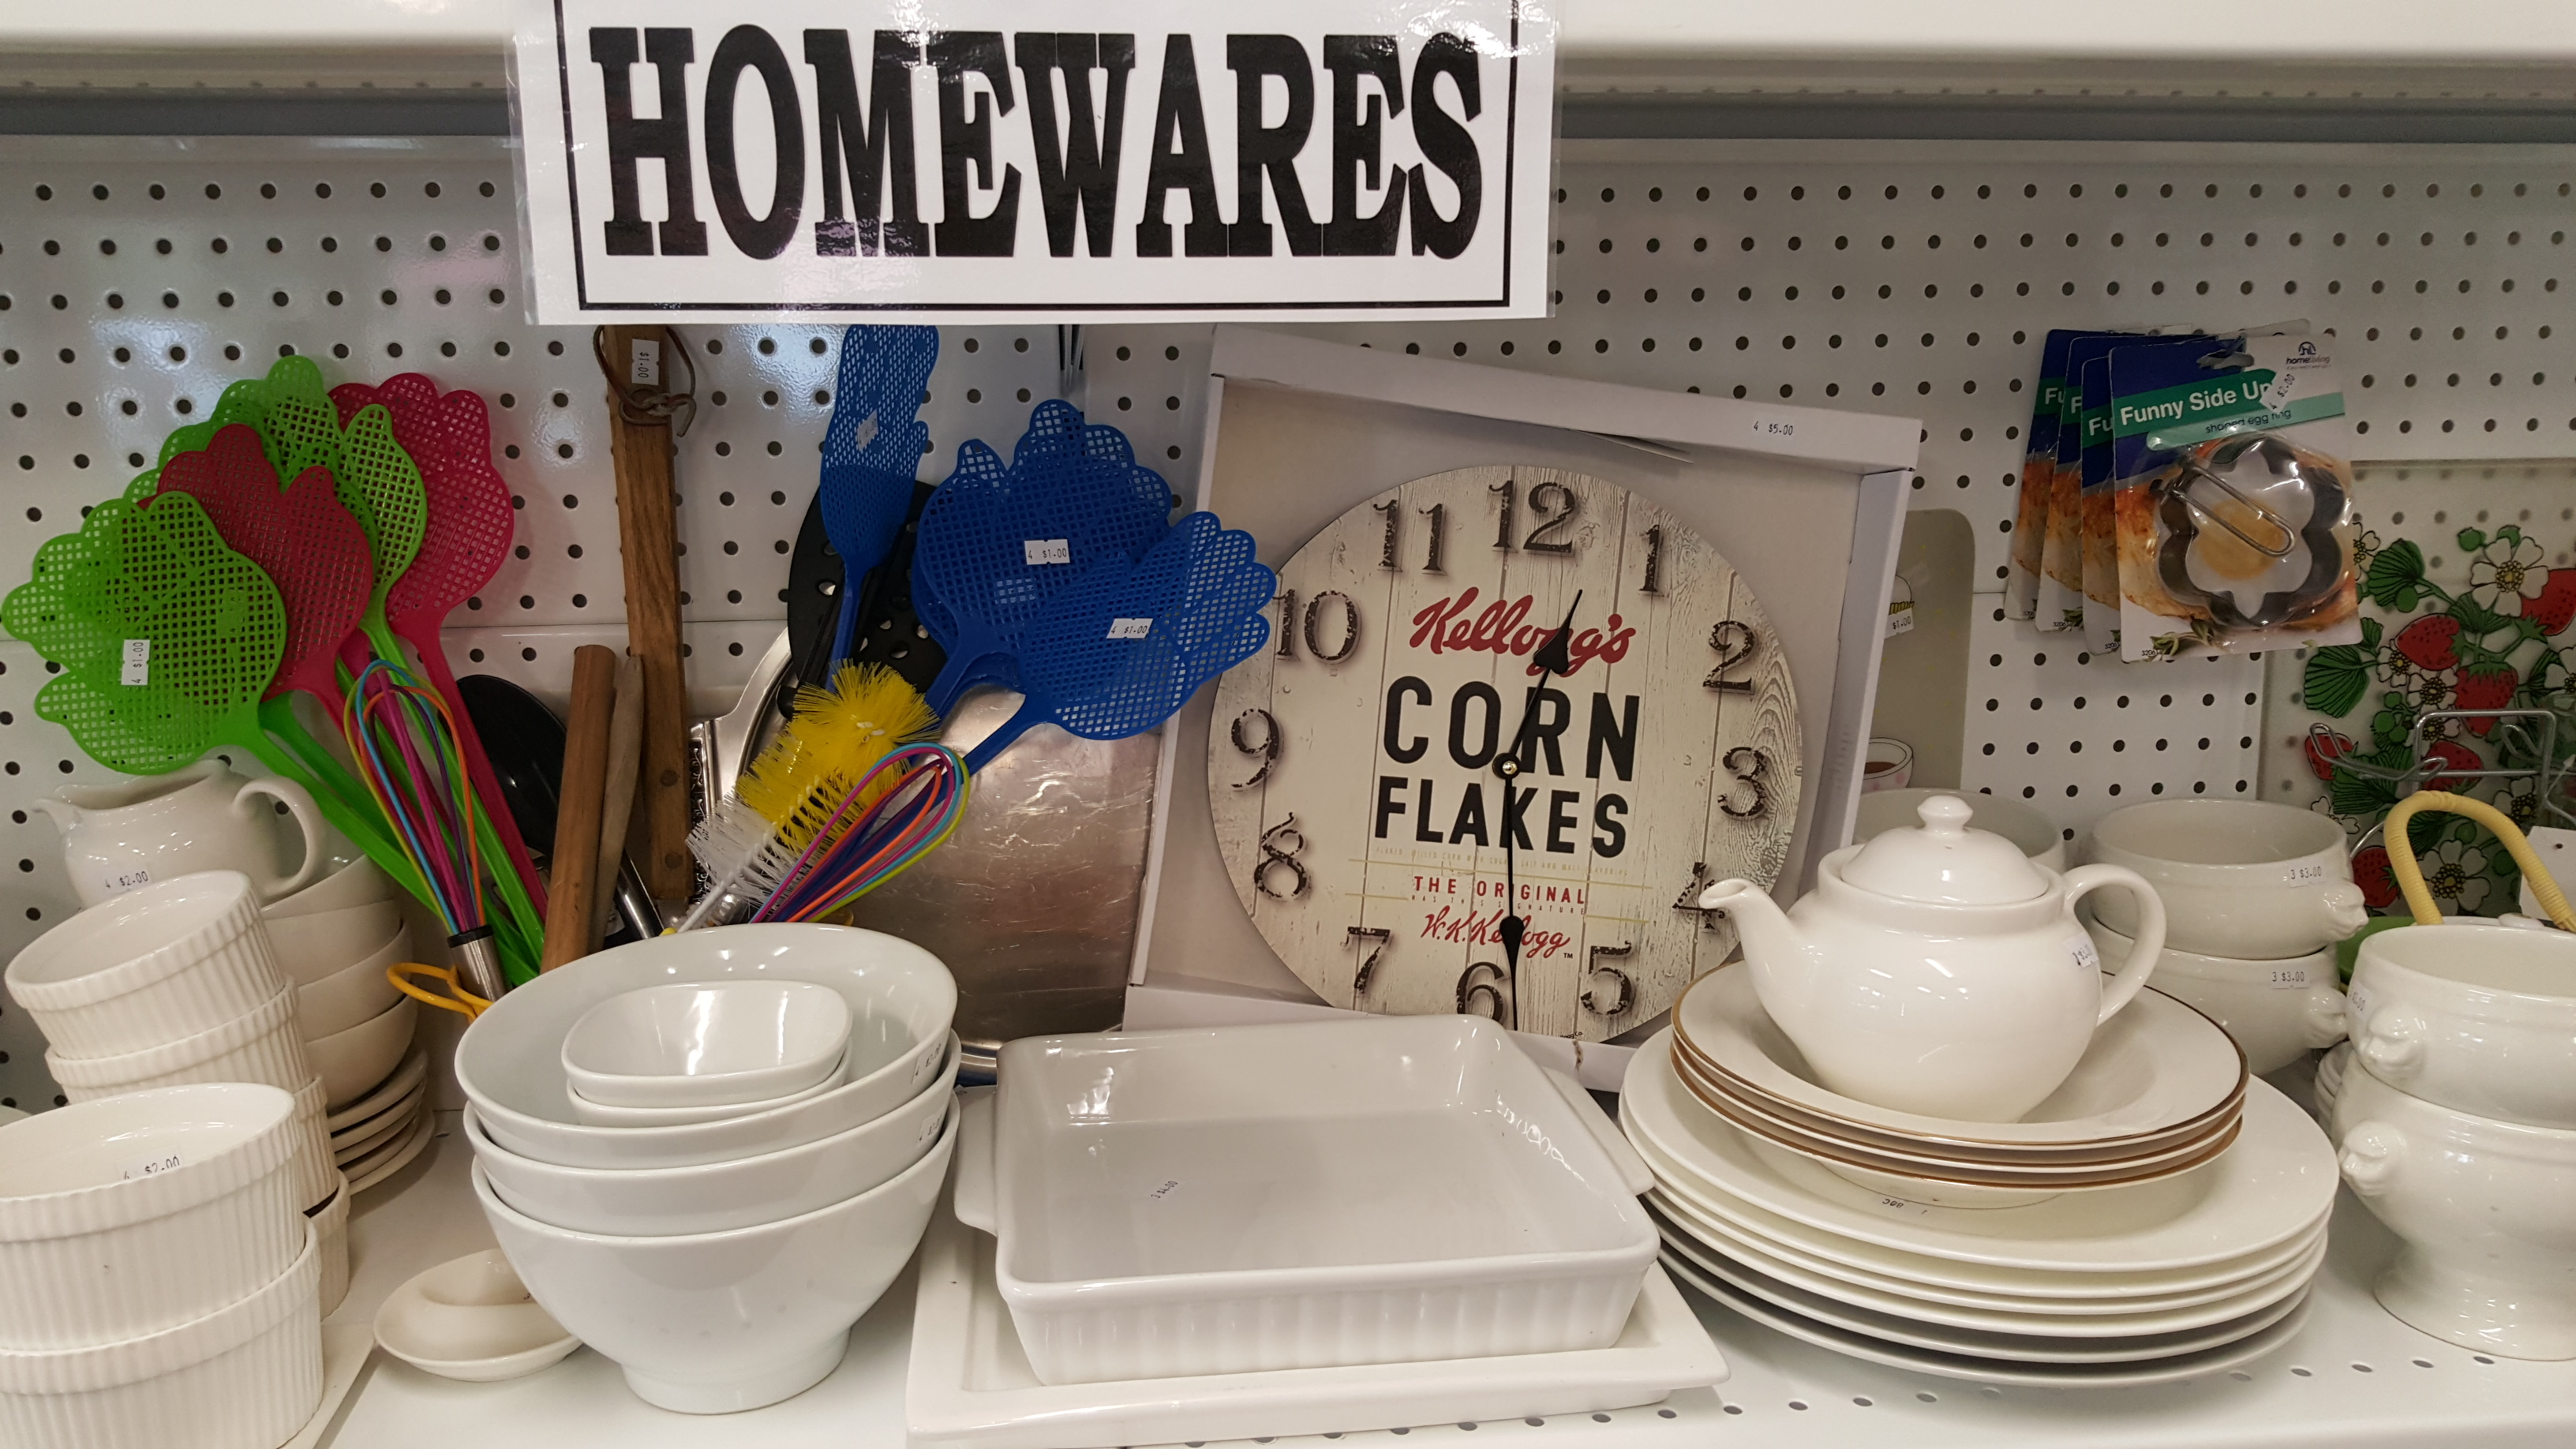 ....always a great variety of homewares to choose from!